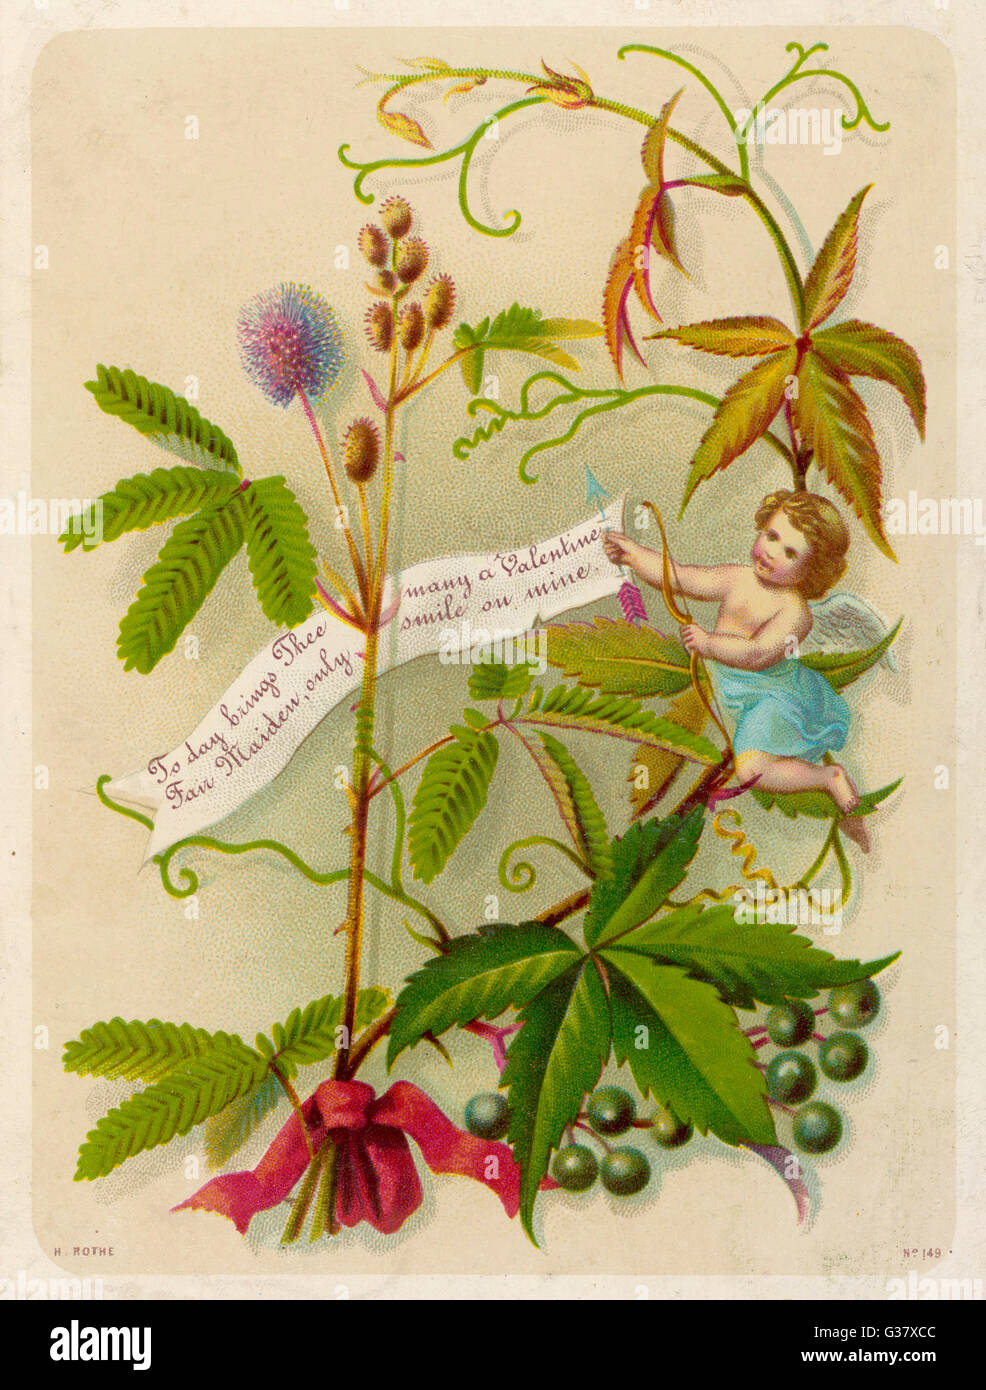 Cupid with a message - 'Today brings thee many a  Valentine, Fair Maiden, only  smile on mine !'       Date: - Stock Image